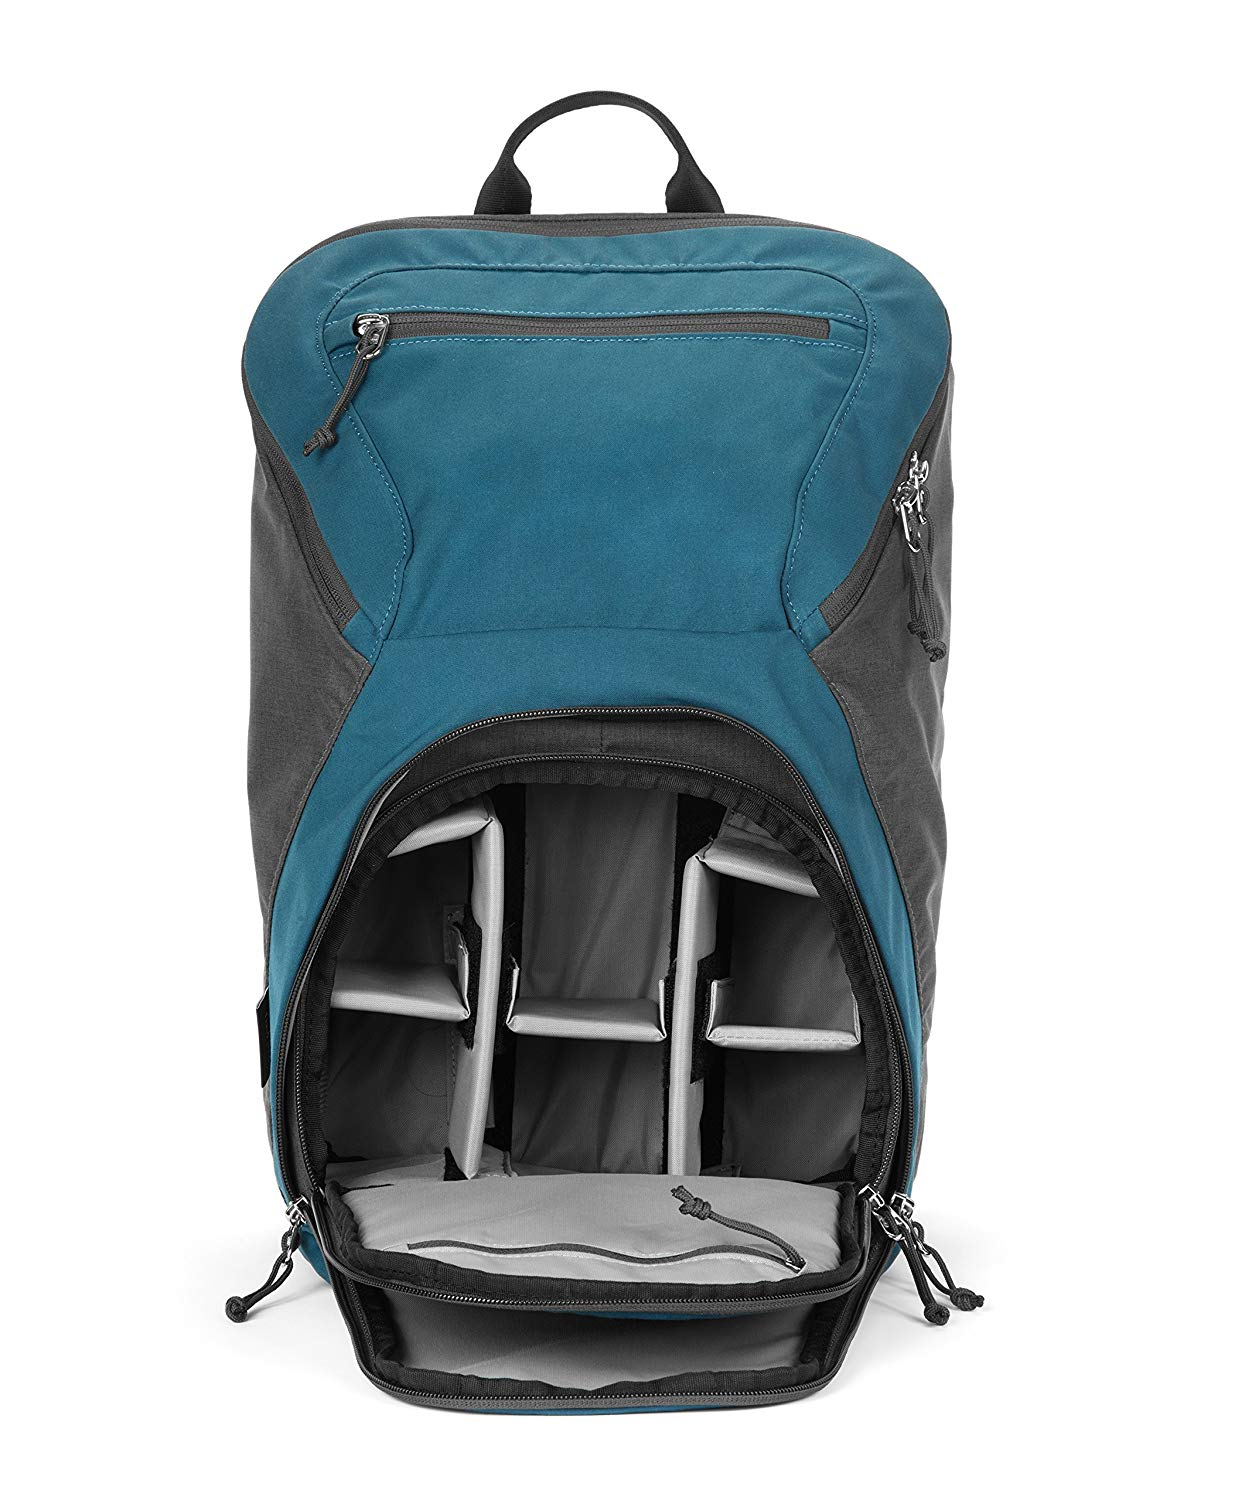 Tamrac Hoodoo 20 Camera Backpack (Ocean)